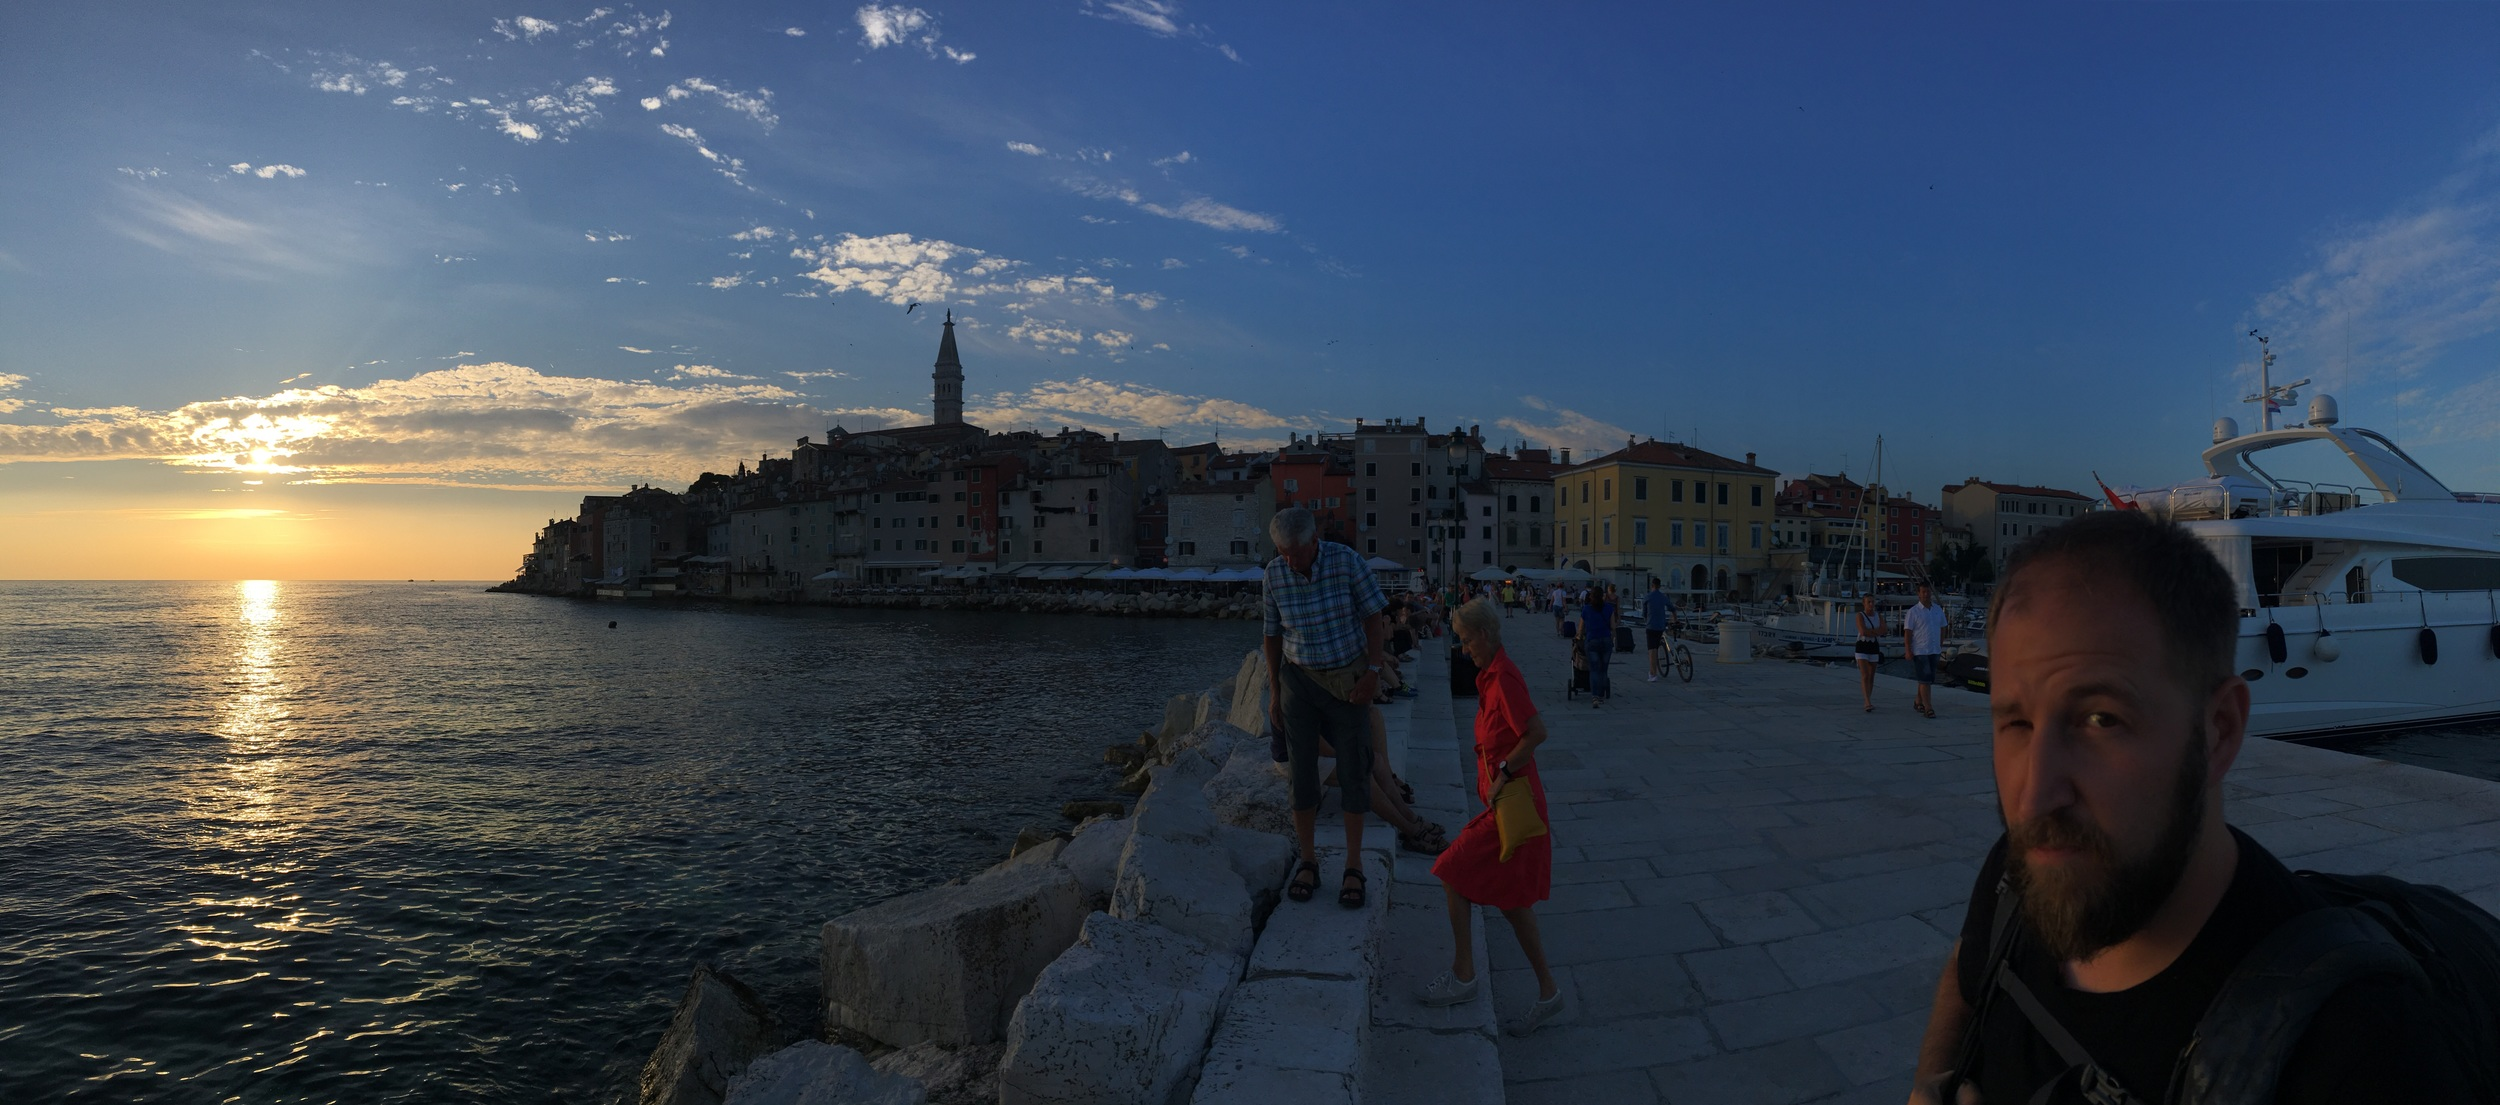 A much better view of Rovinj. And maybe Adam, too.